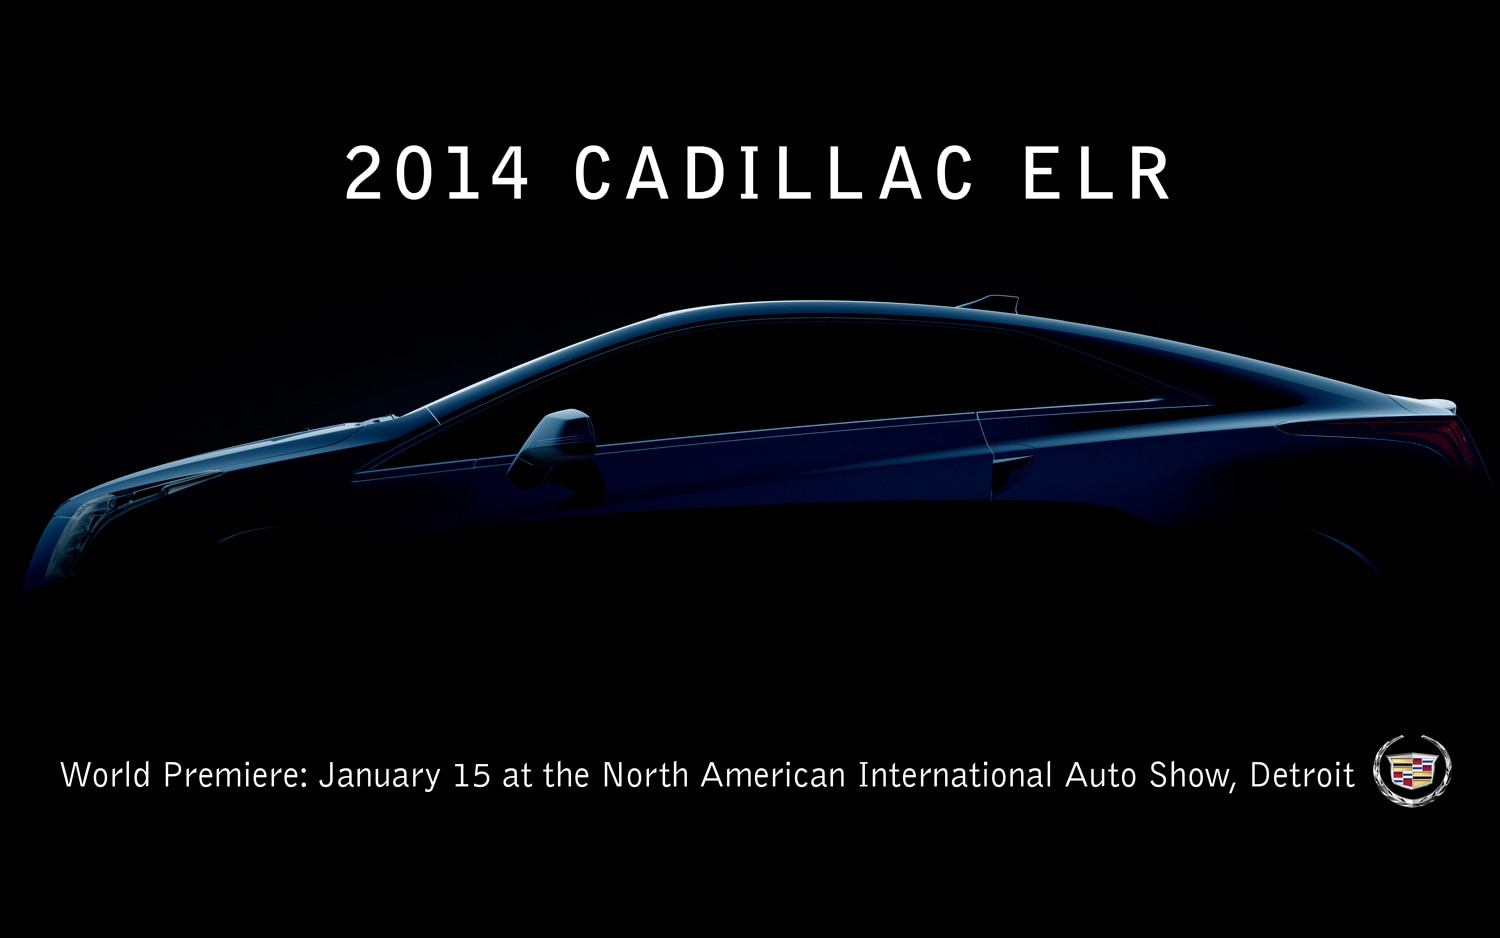 2014 Cadillac ELR Teaser With Text1